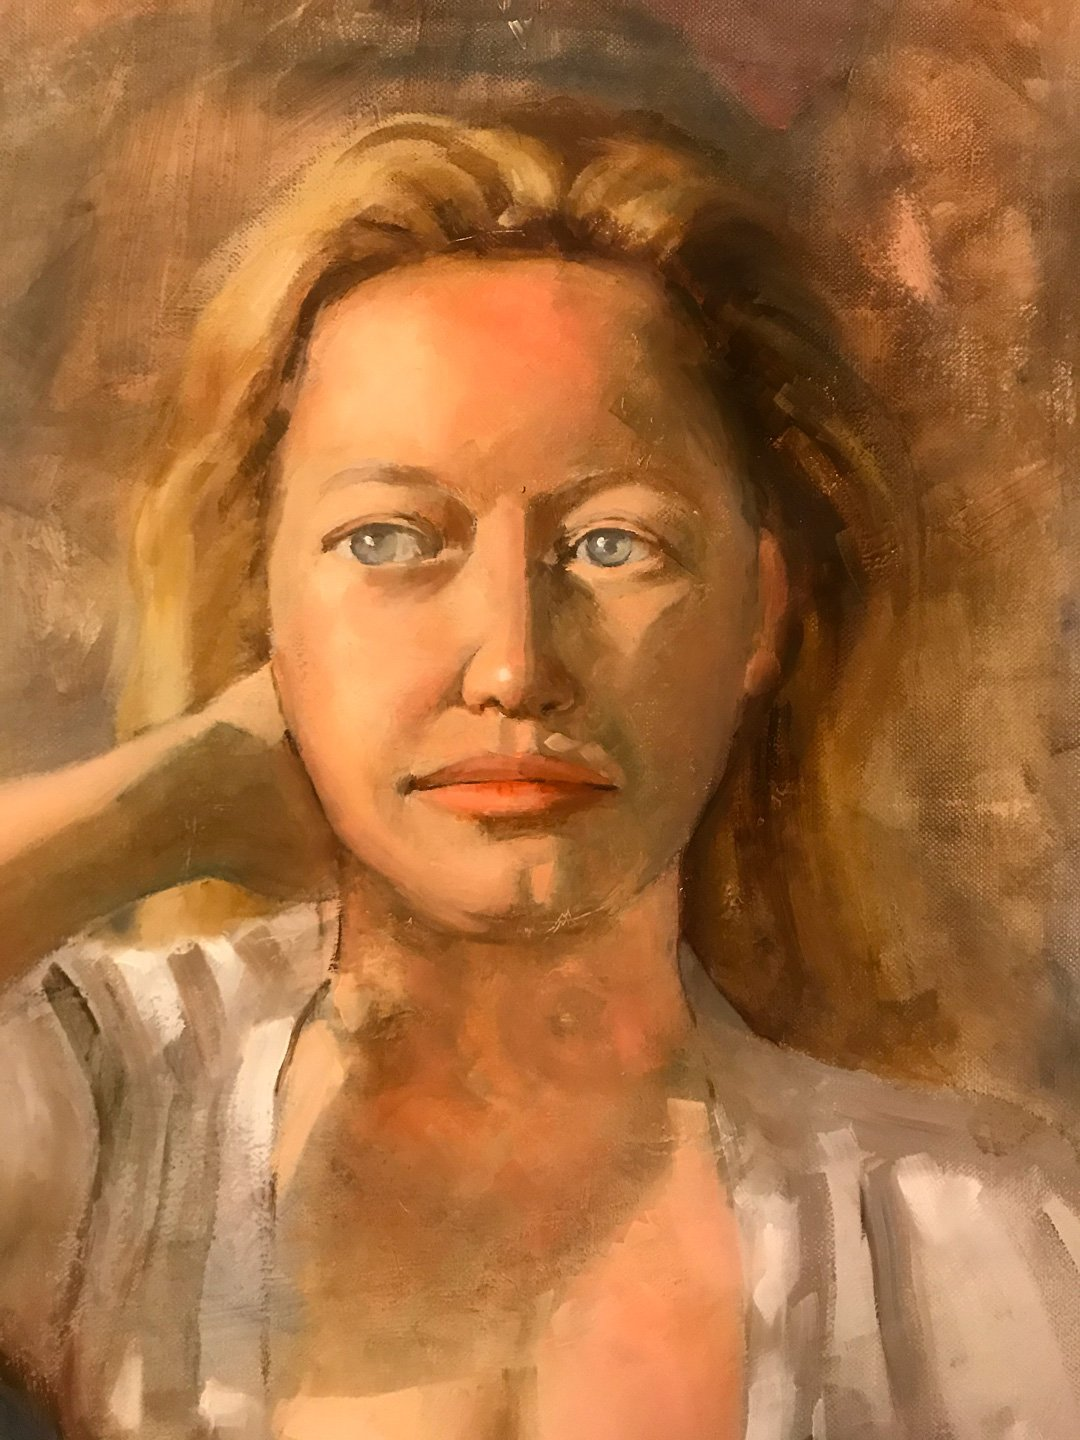 Graham Joyner   2021   Young woman in white gown   Oil on canvas   46x61cm